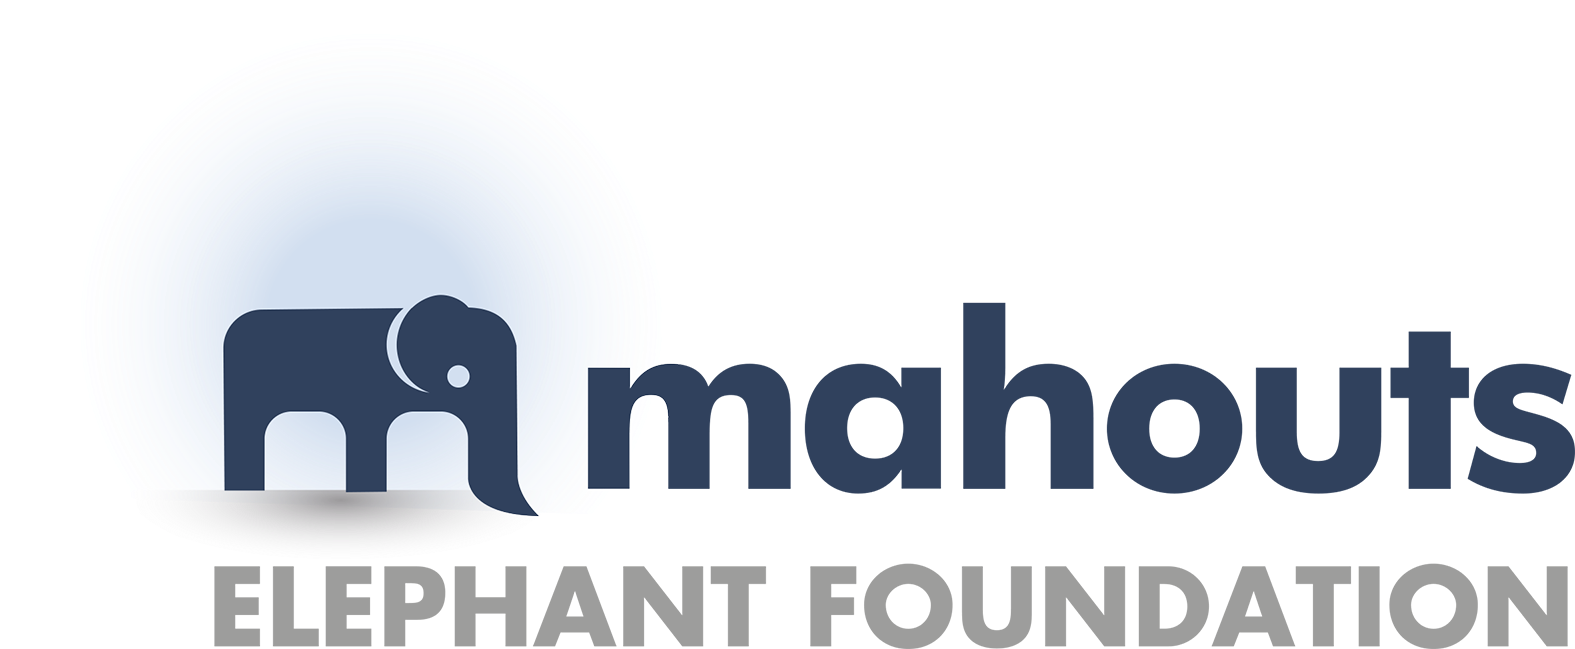 Mahouts Elephant Foundation logo